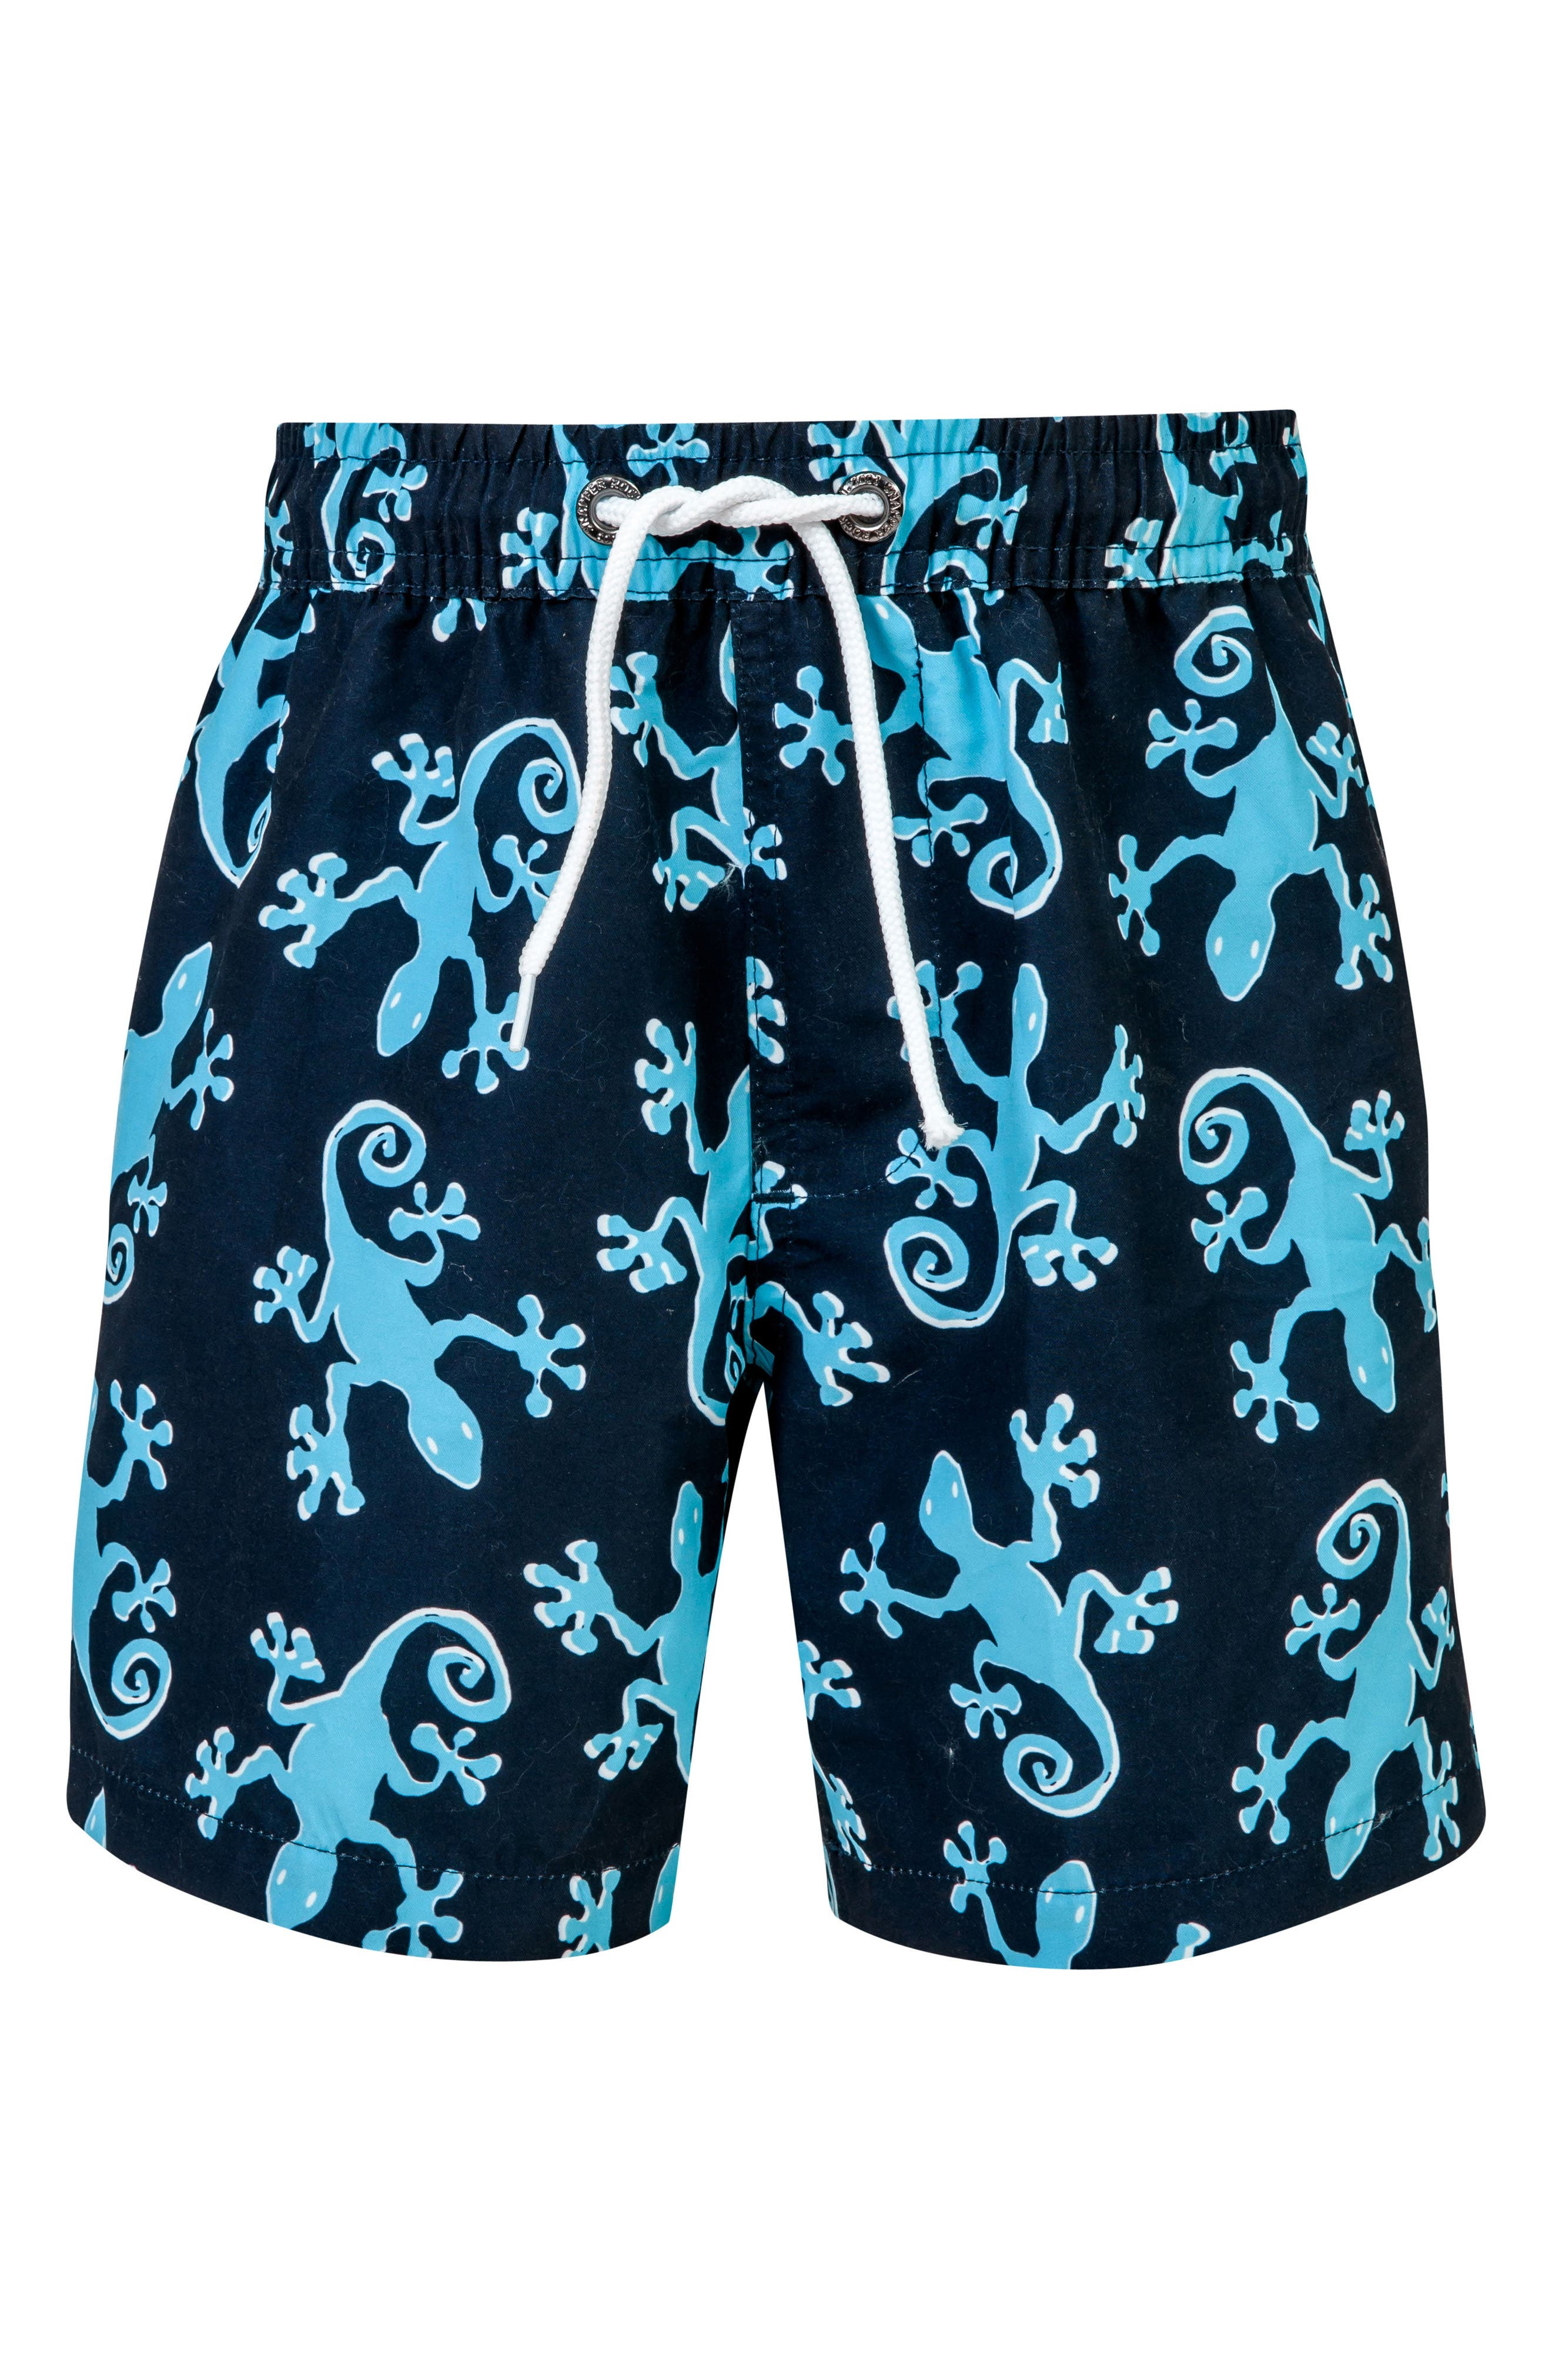 Gecko Board Shorts,                             Main thumbnail 1, color,                             NAVY/ AQUA